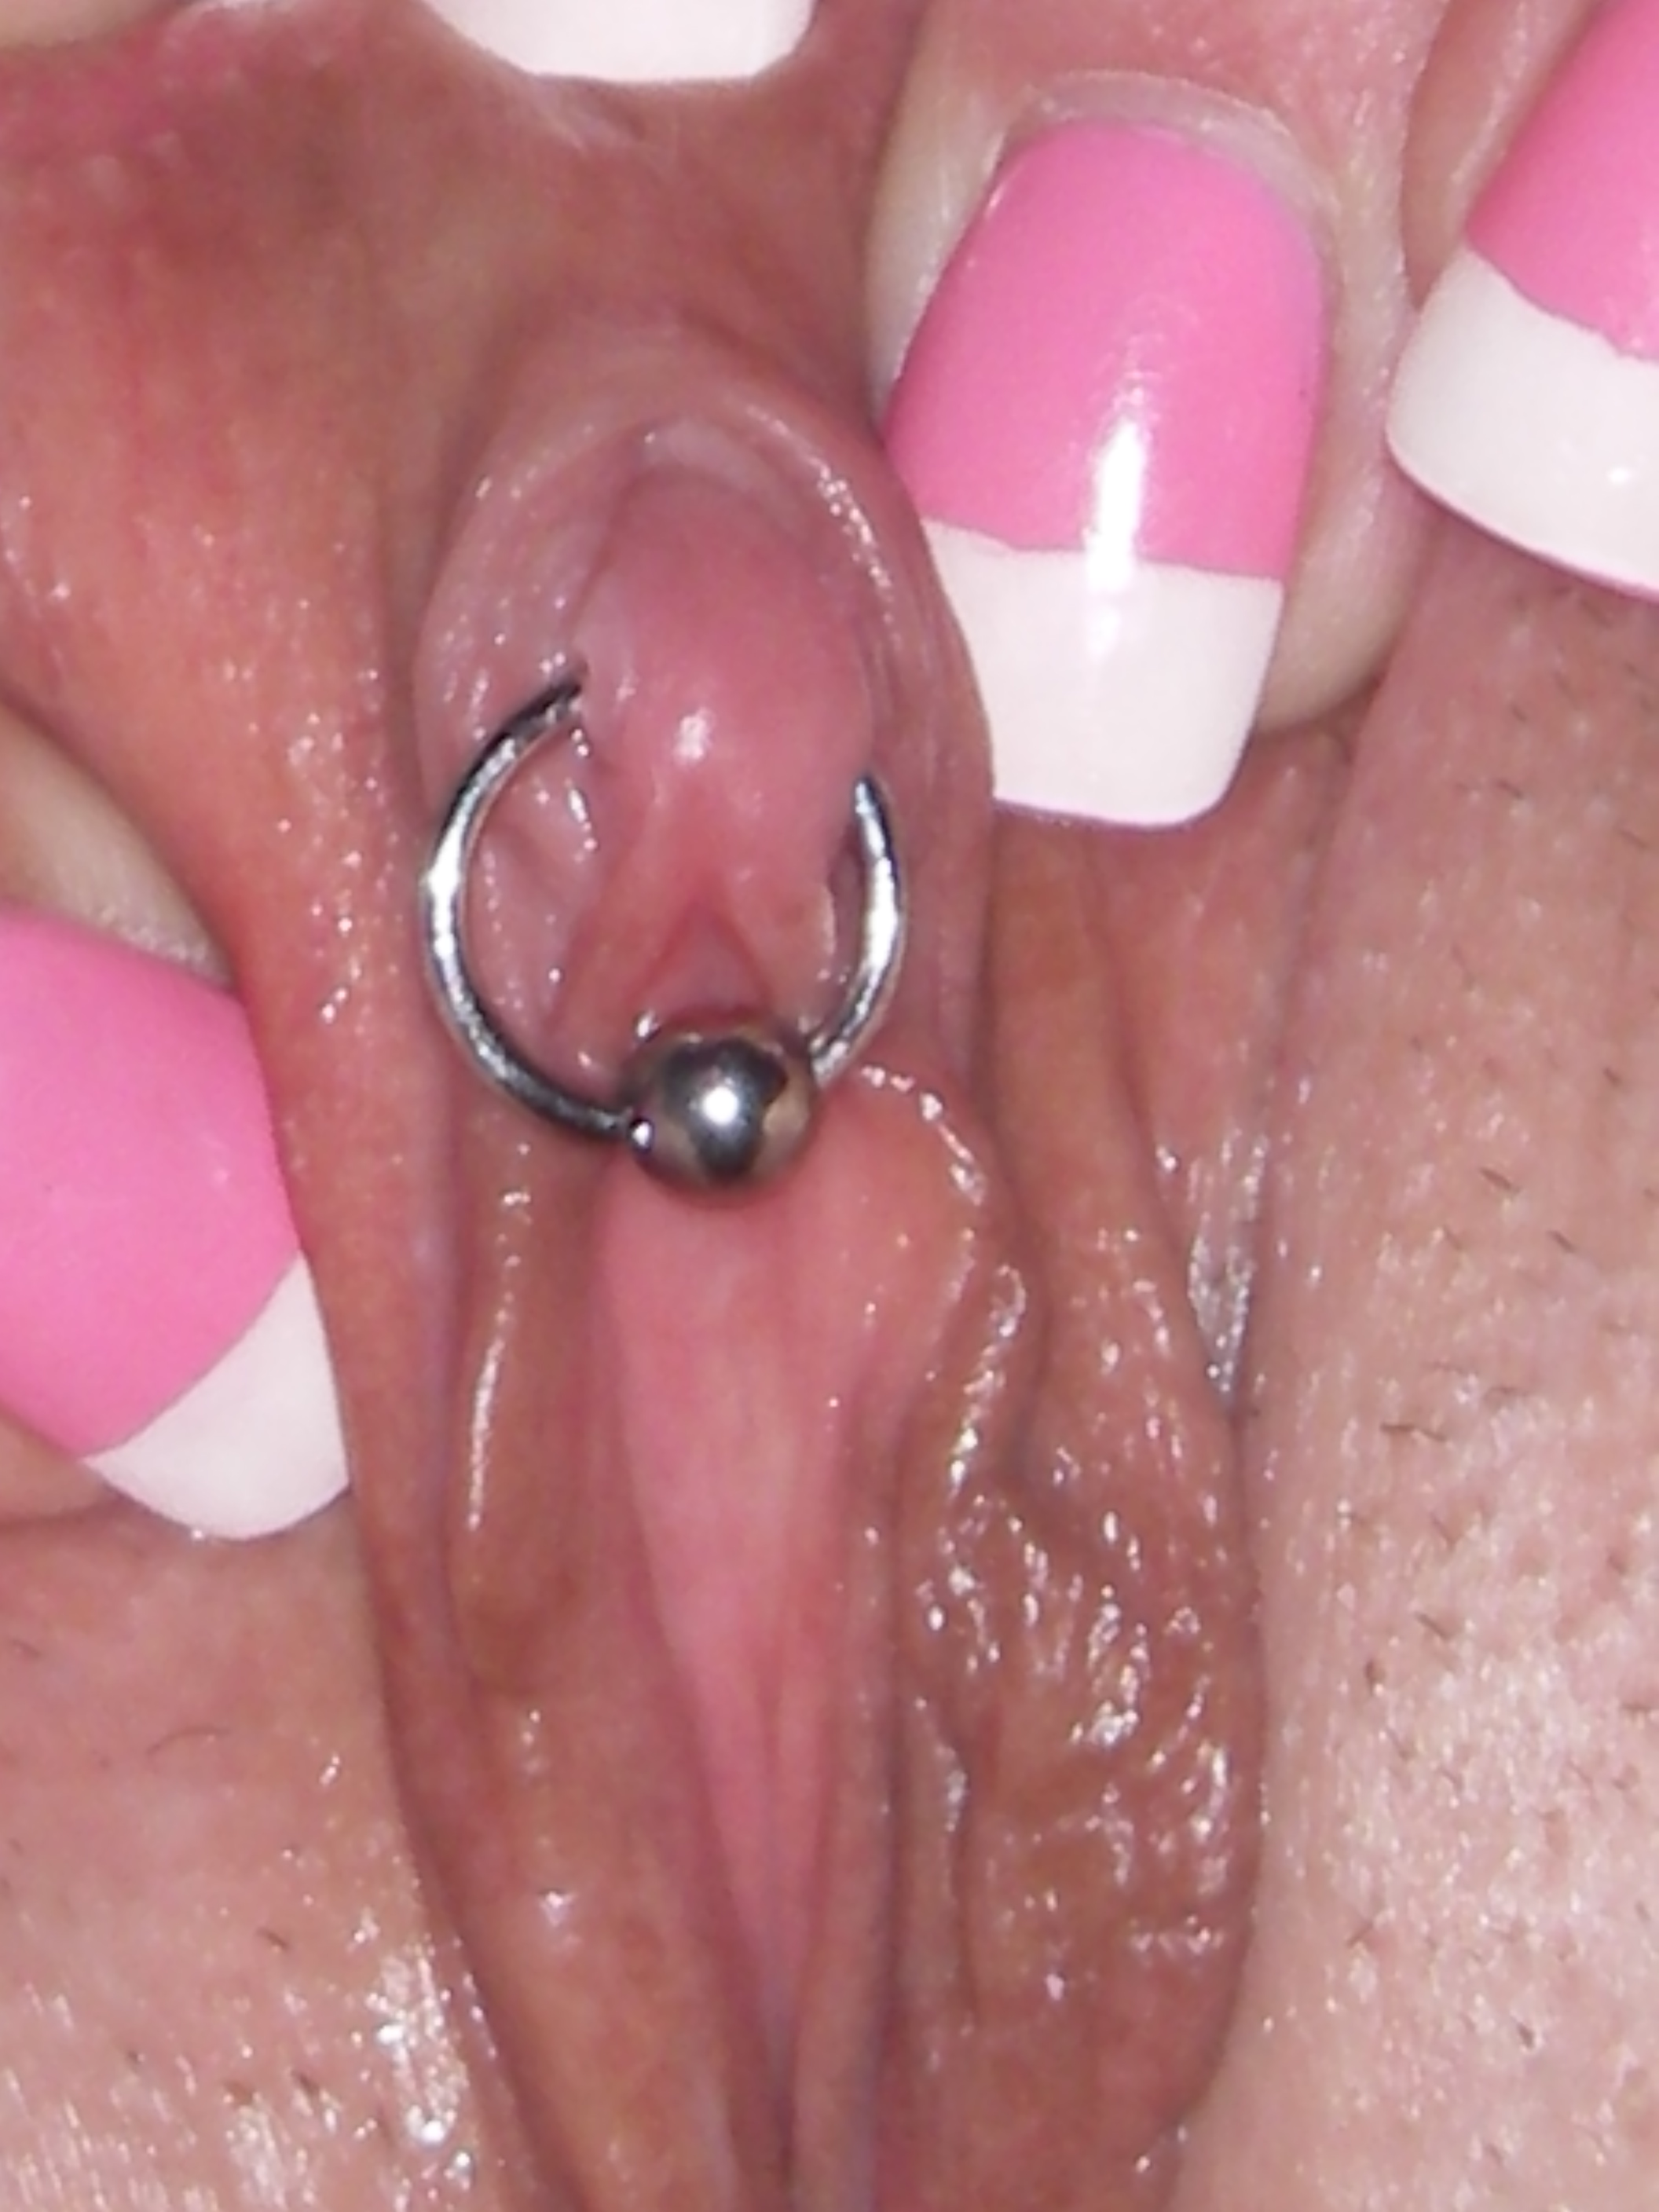 pictures of clit rings